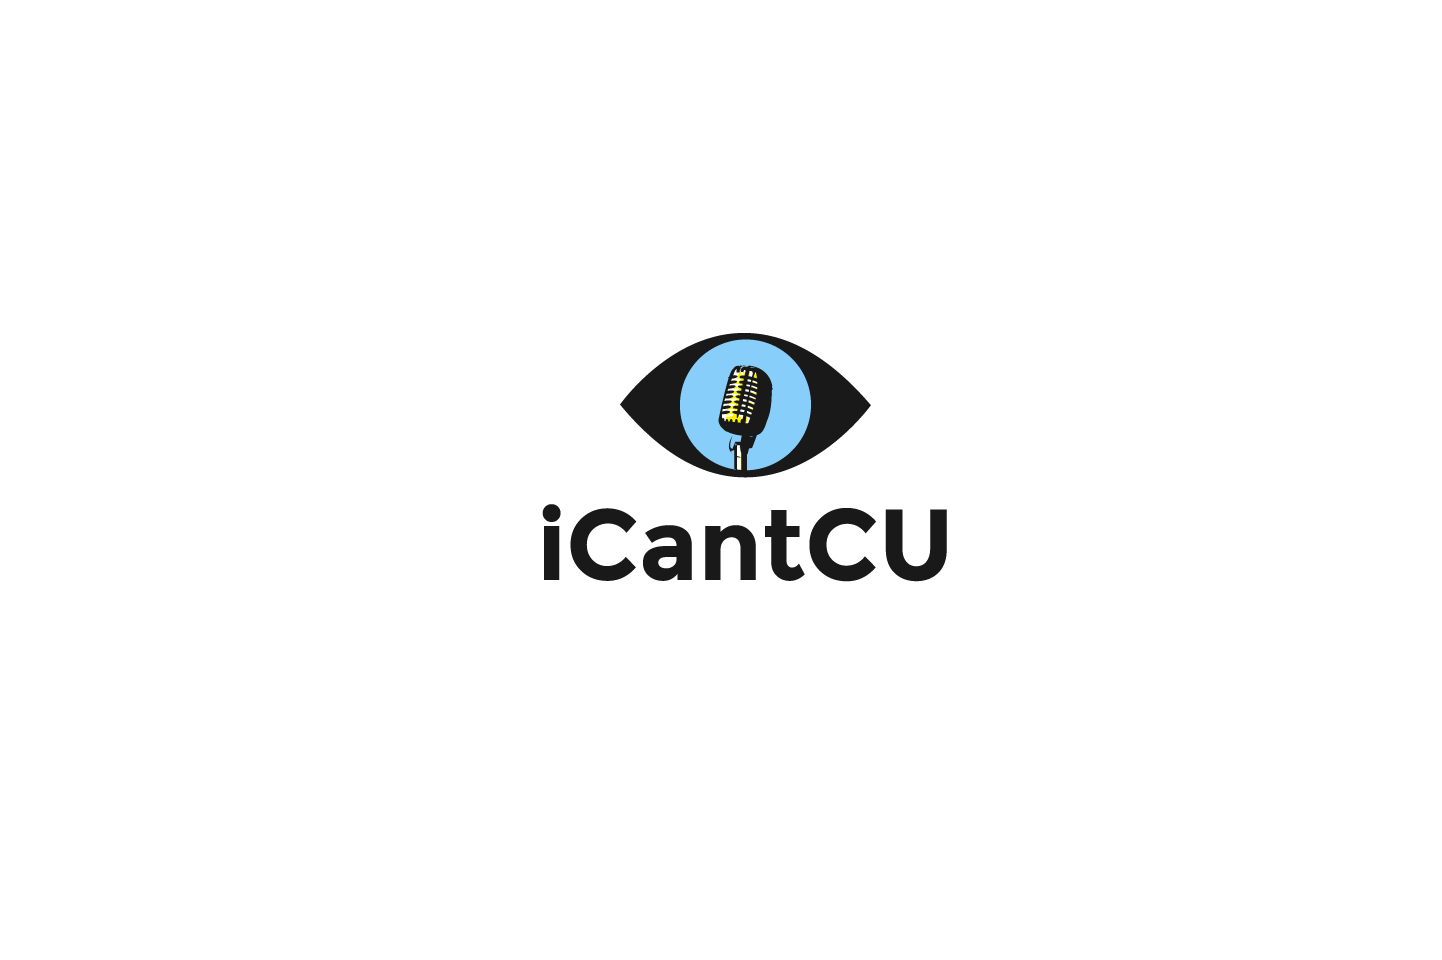 Design a new modern logo for iCantCU podcast and website.